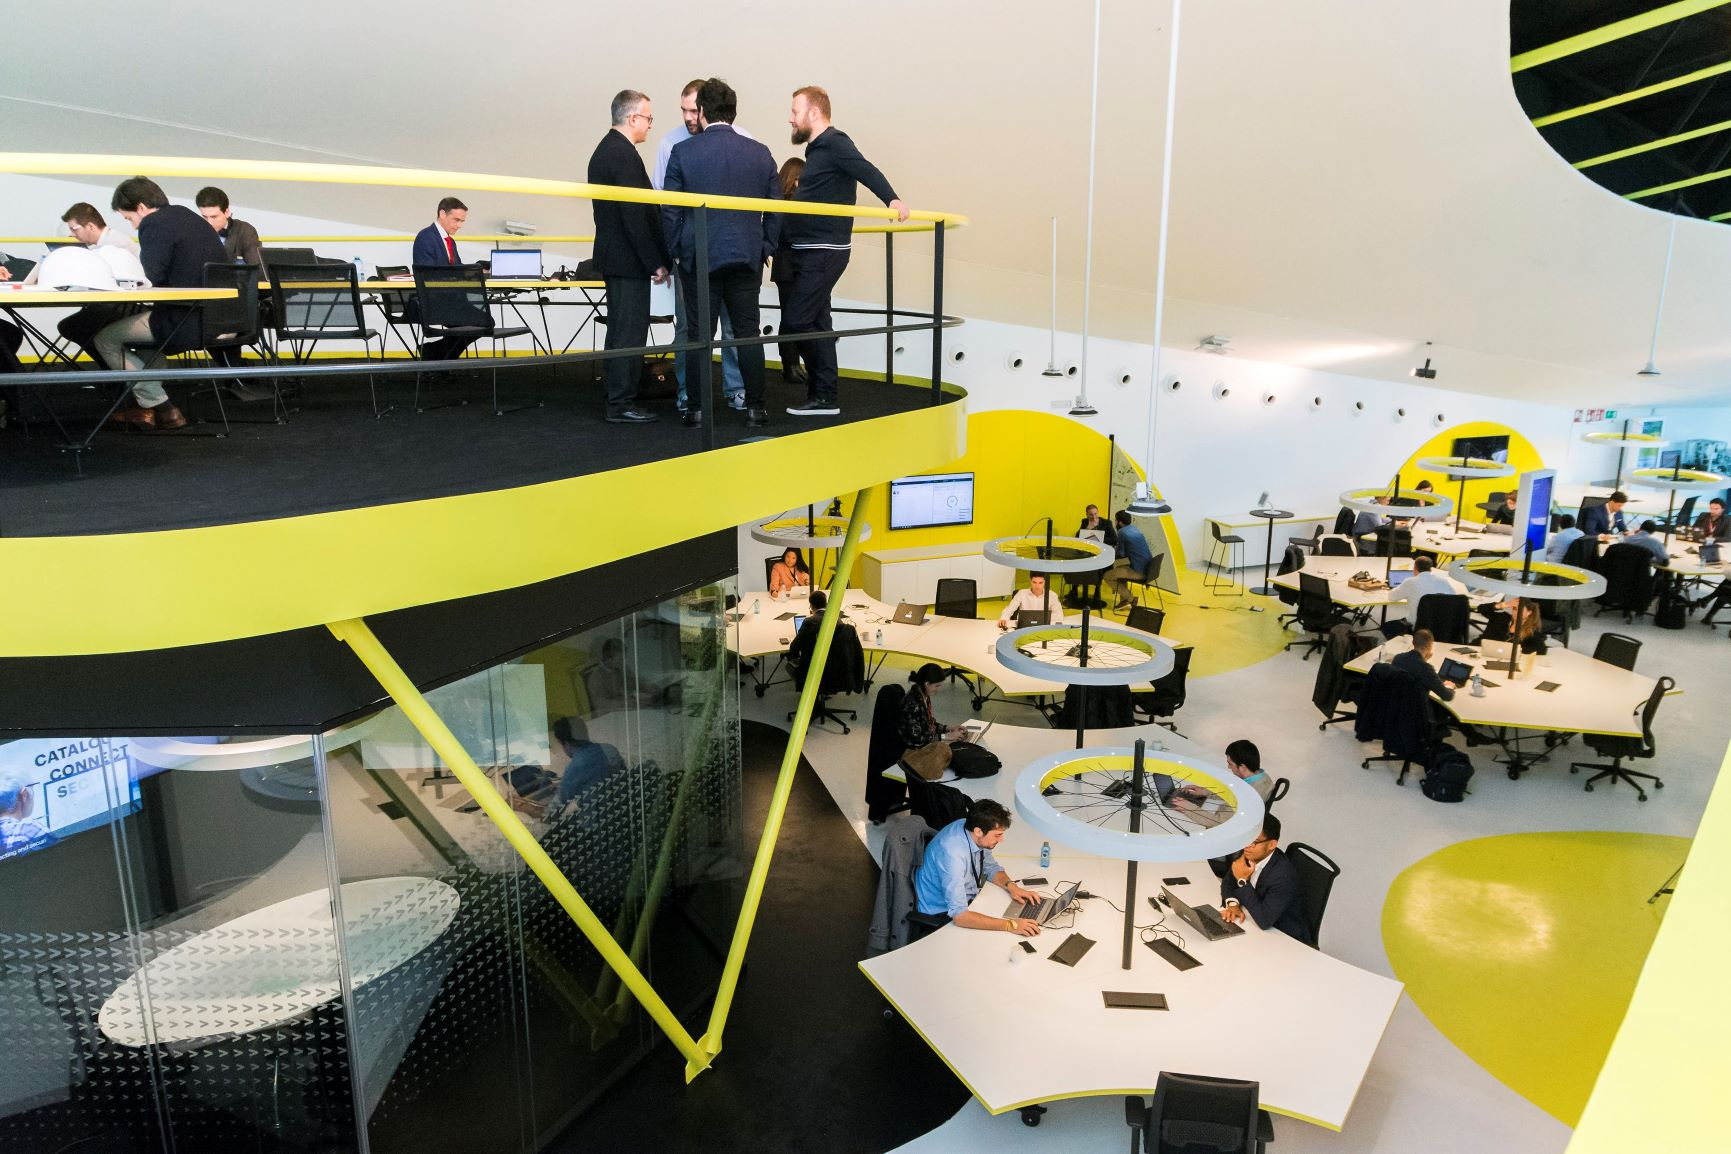 -	New Industry X.0 Centre of Accenture in Bilbao